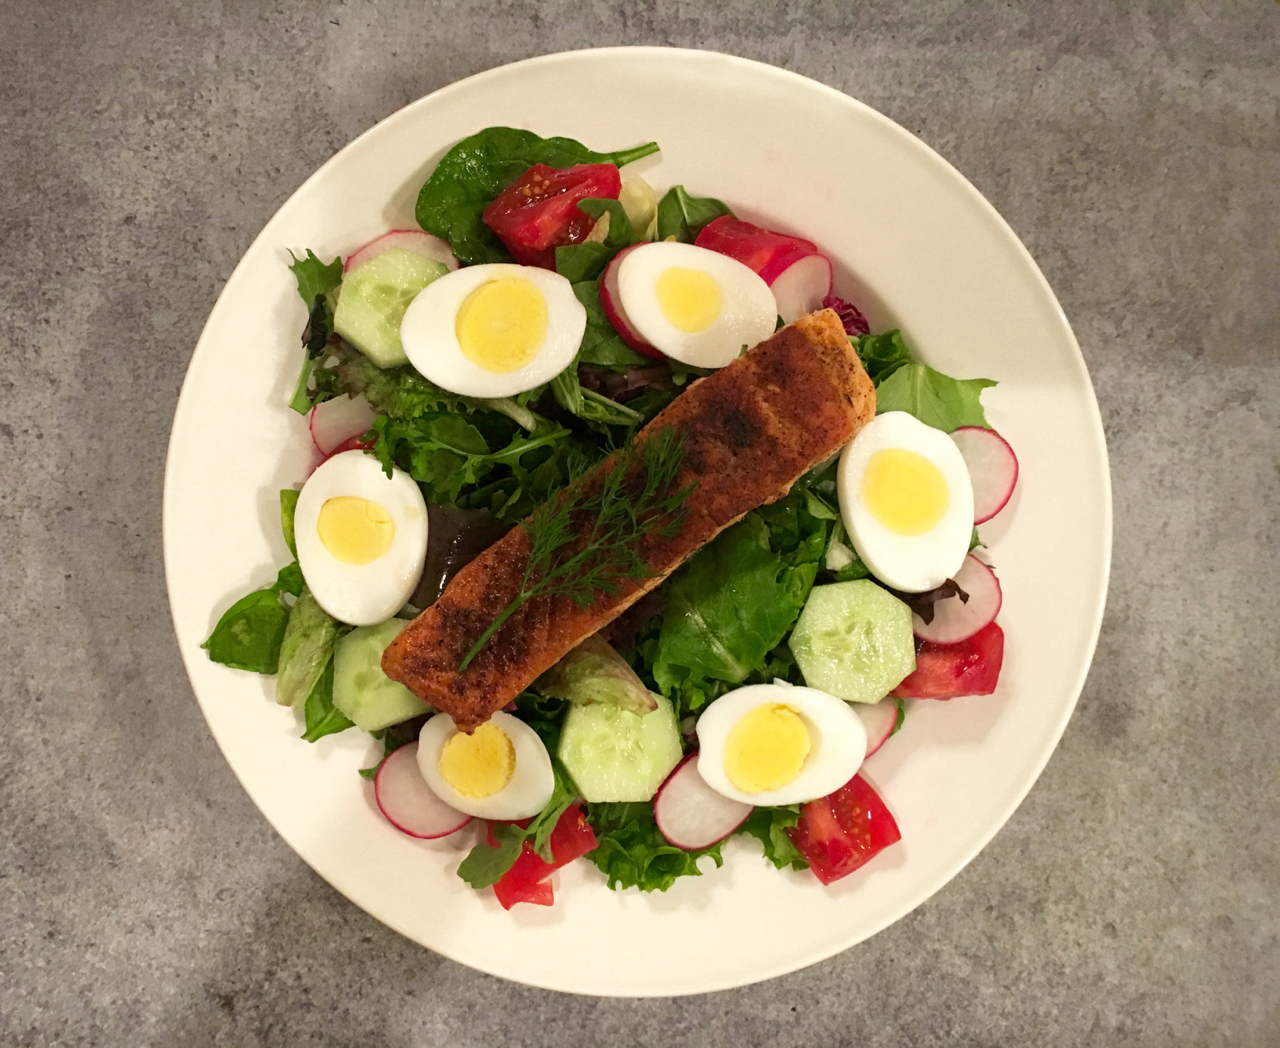 Blackened Salmon Salad With Yogurt Dill Dressing